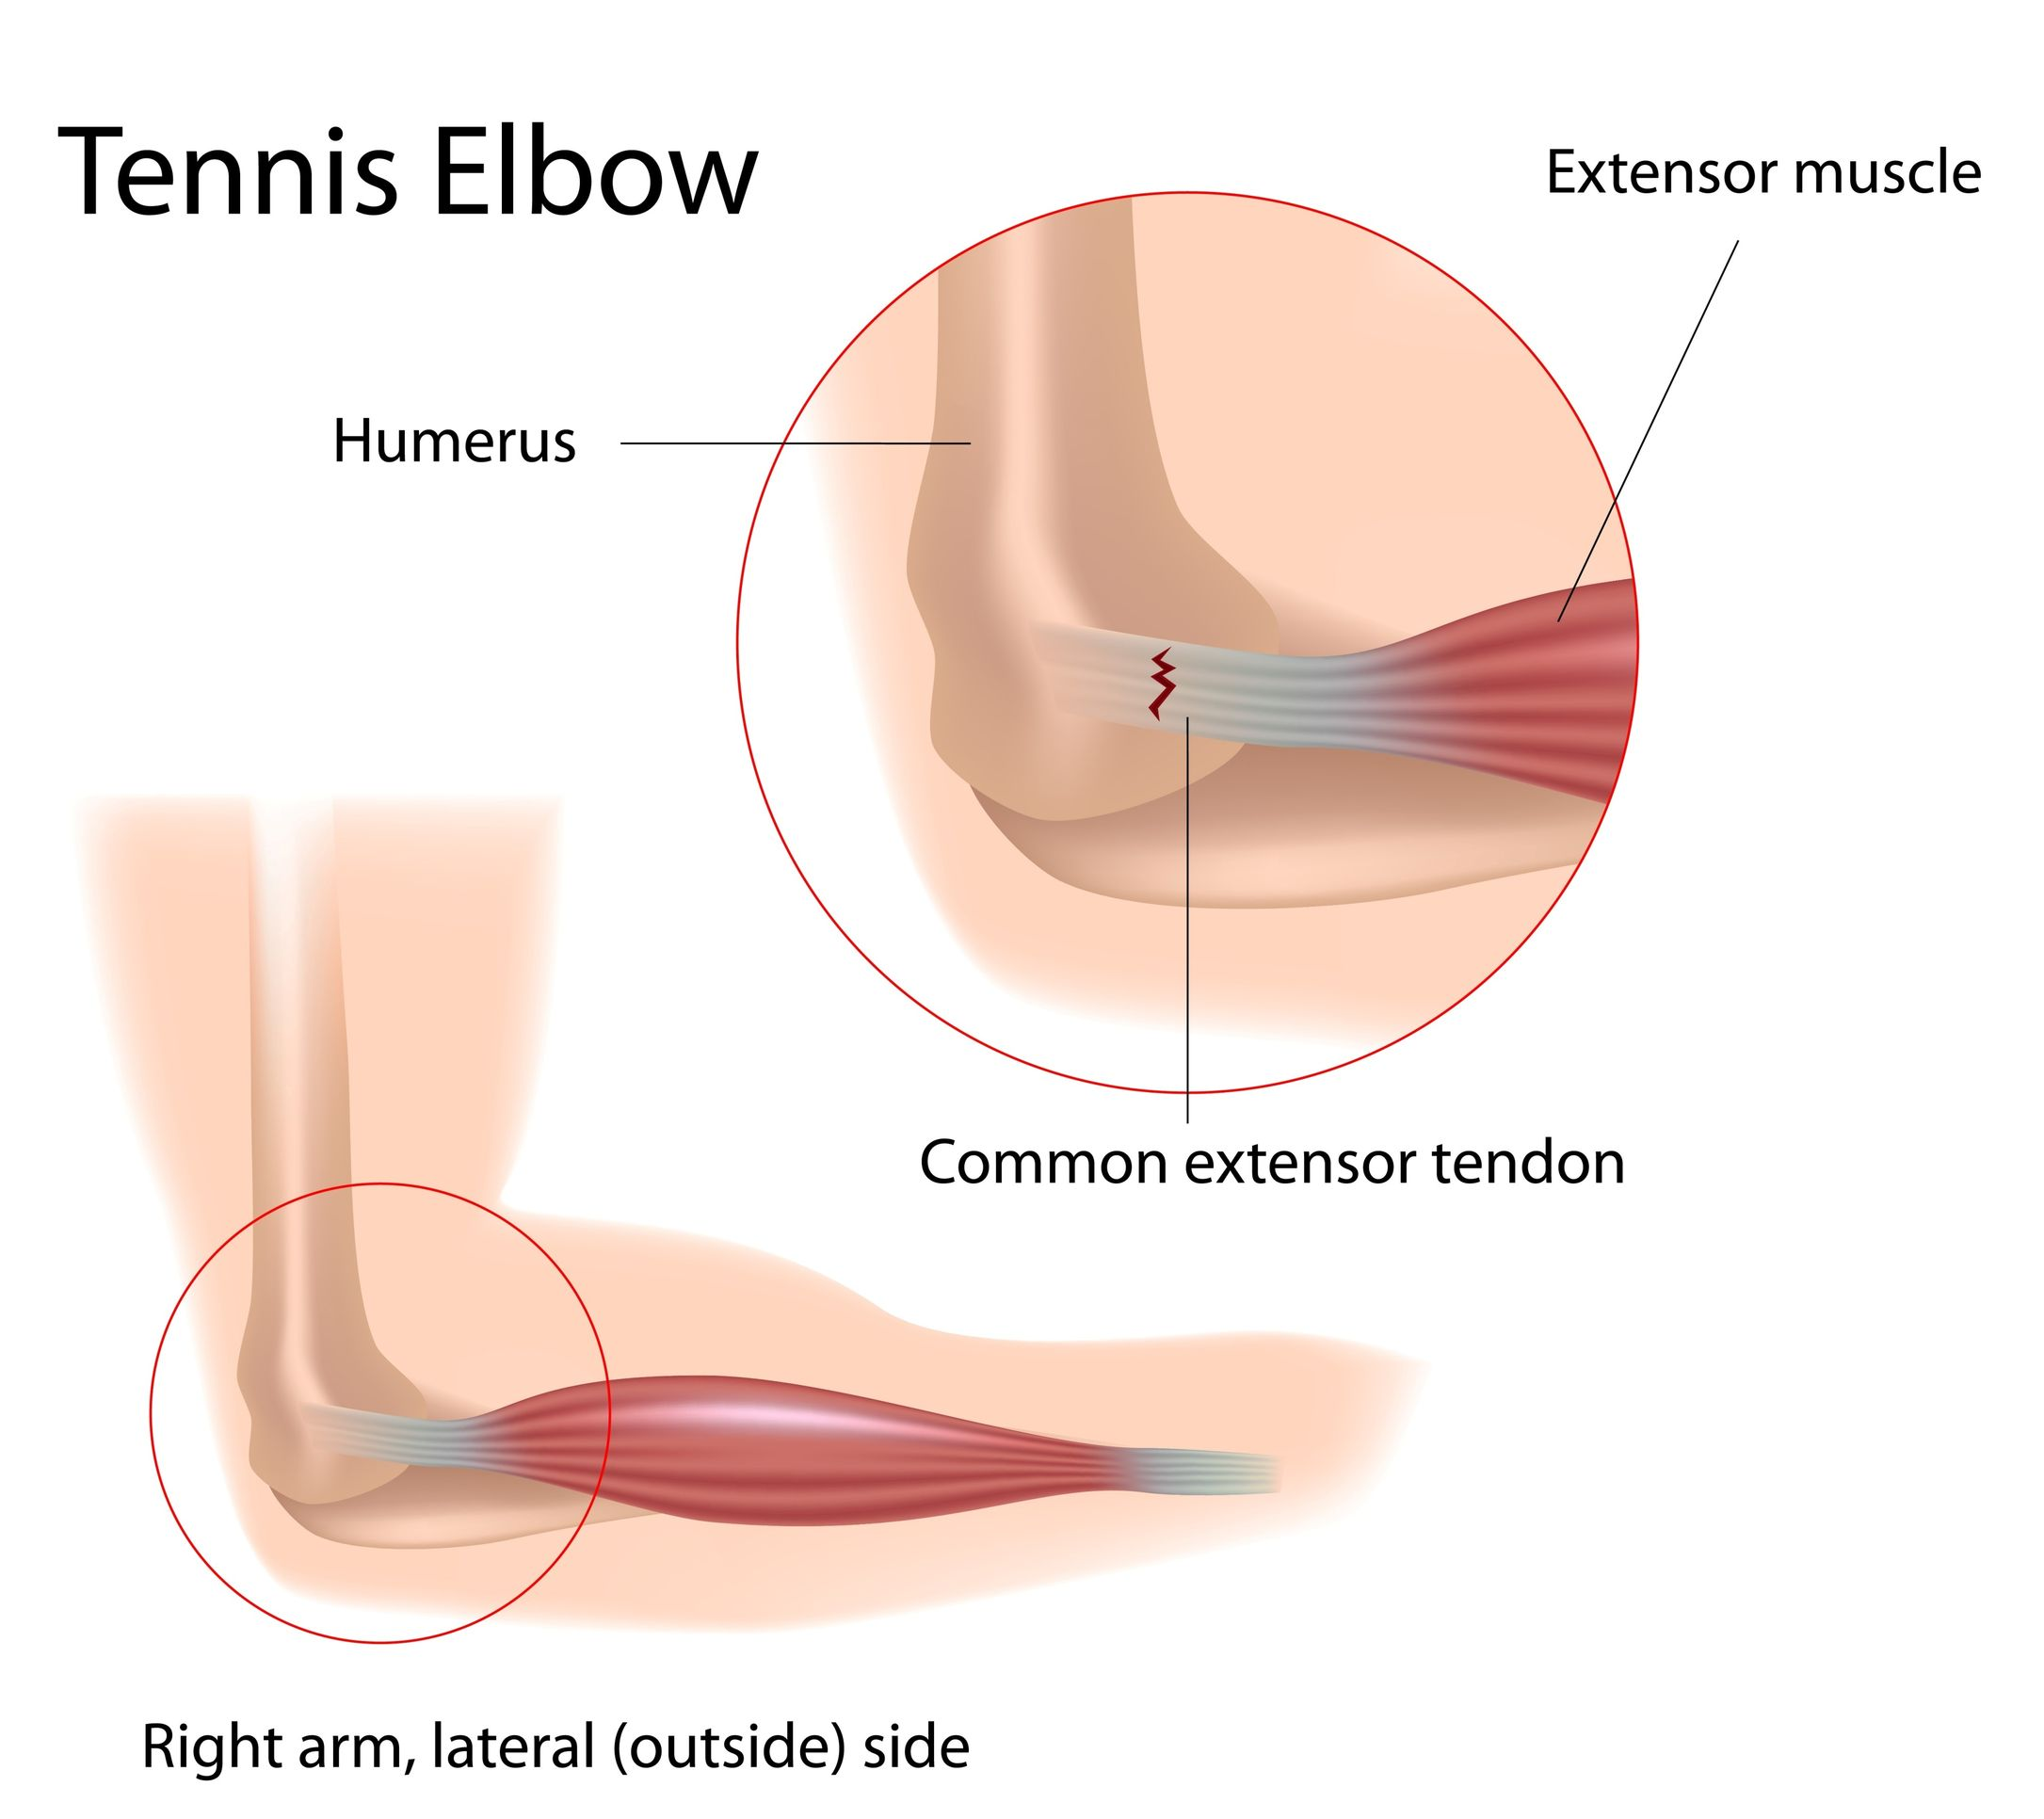 tennis elbow - definition, anatomy and causes - jeffrey h. berg, m.d.